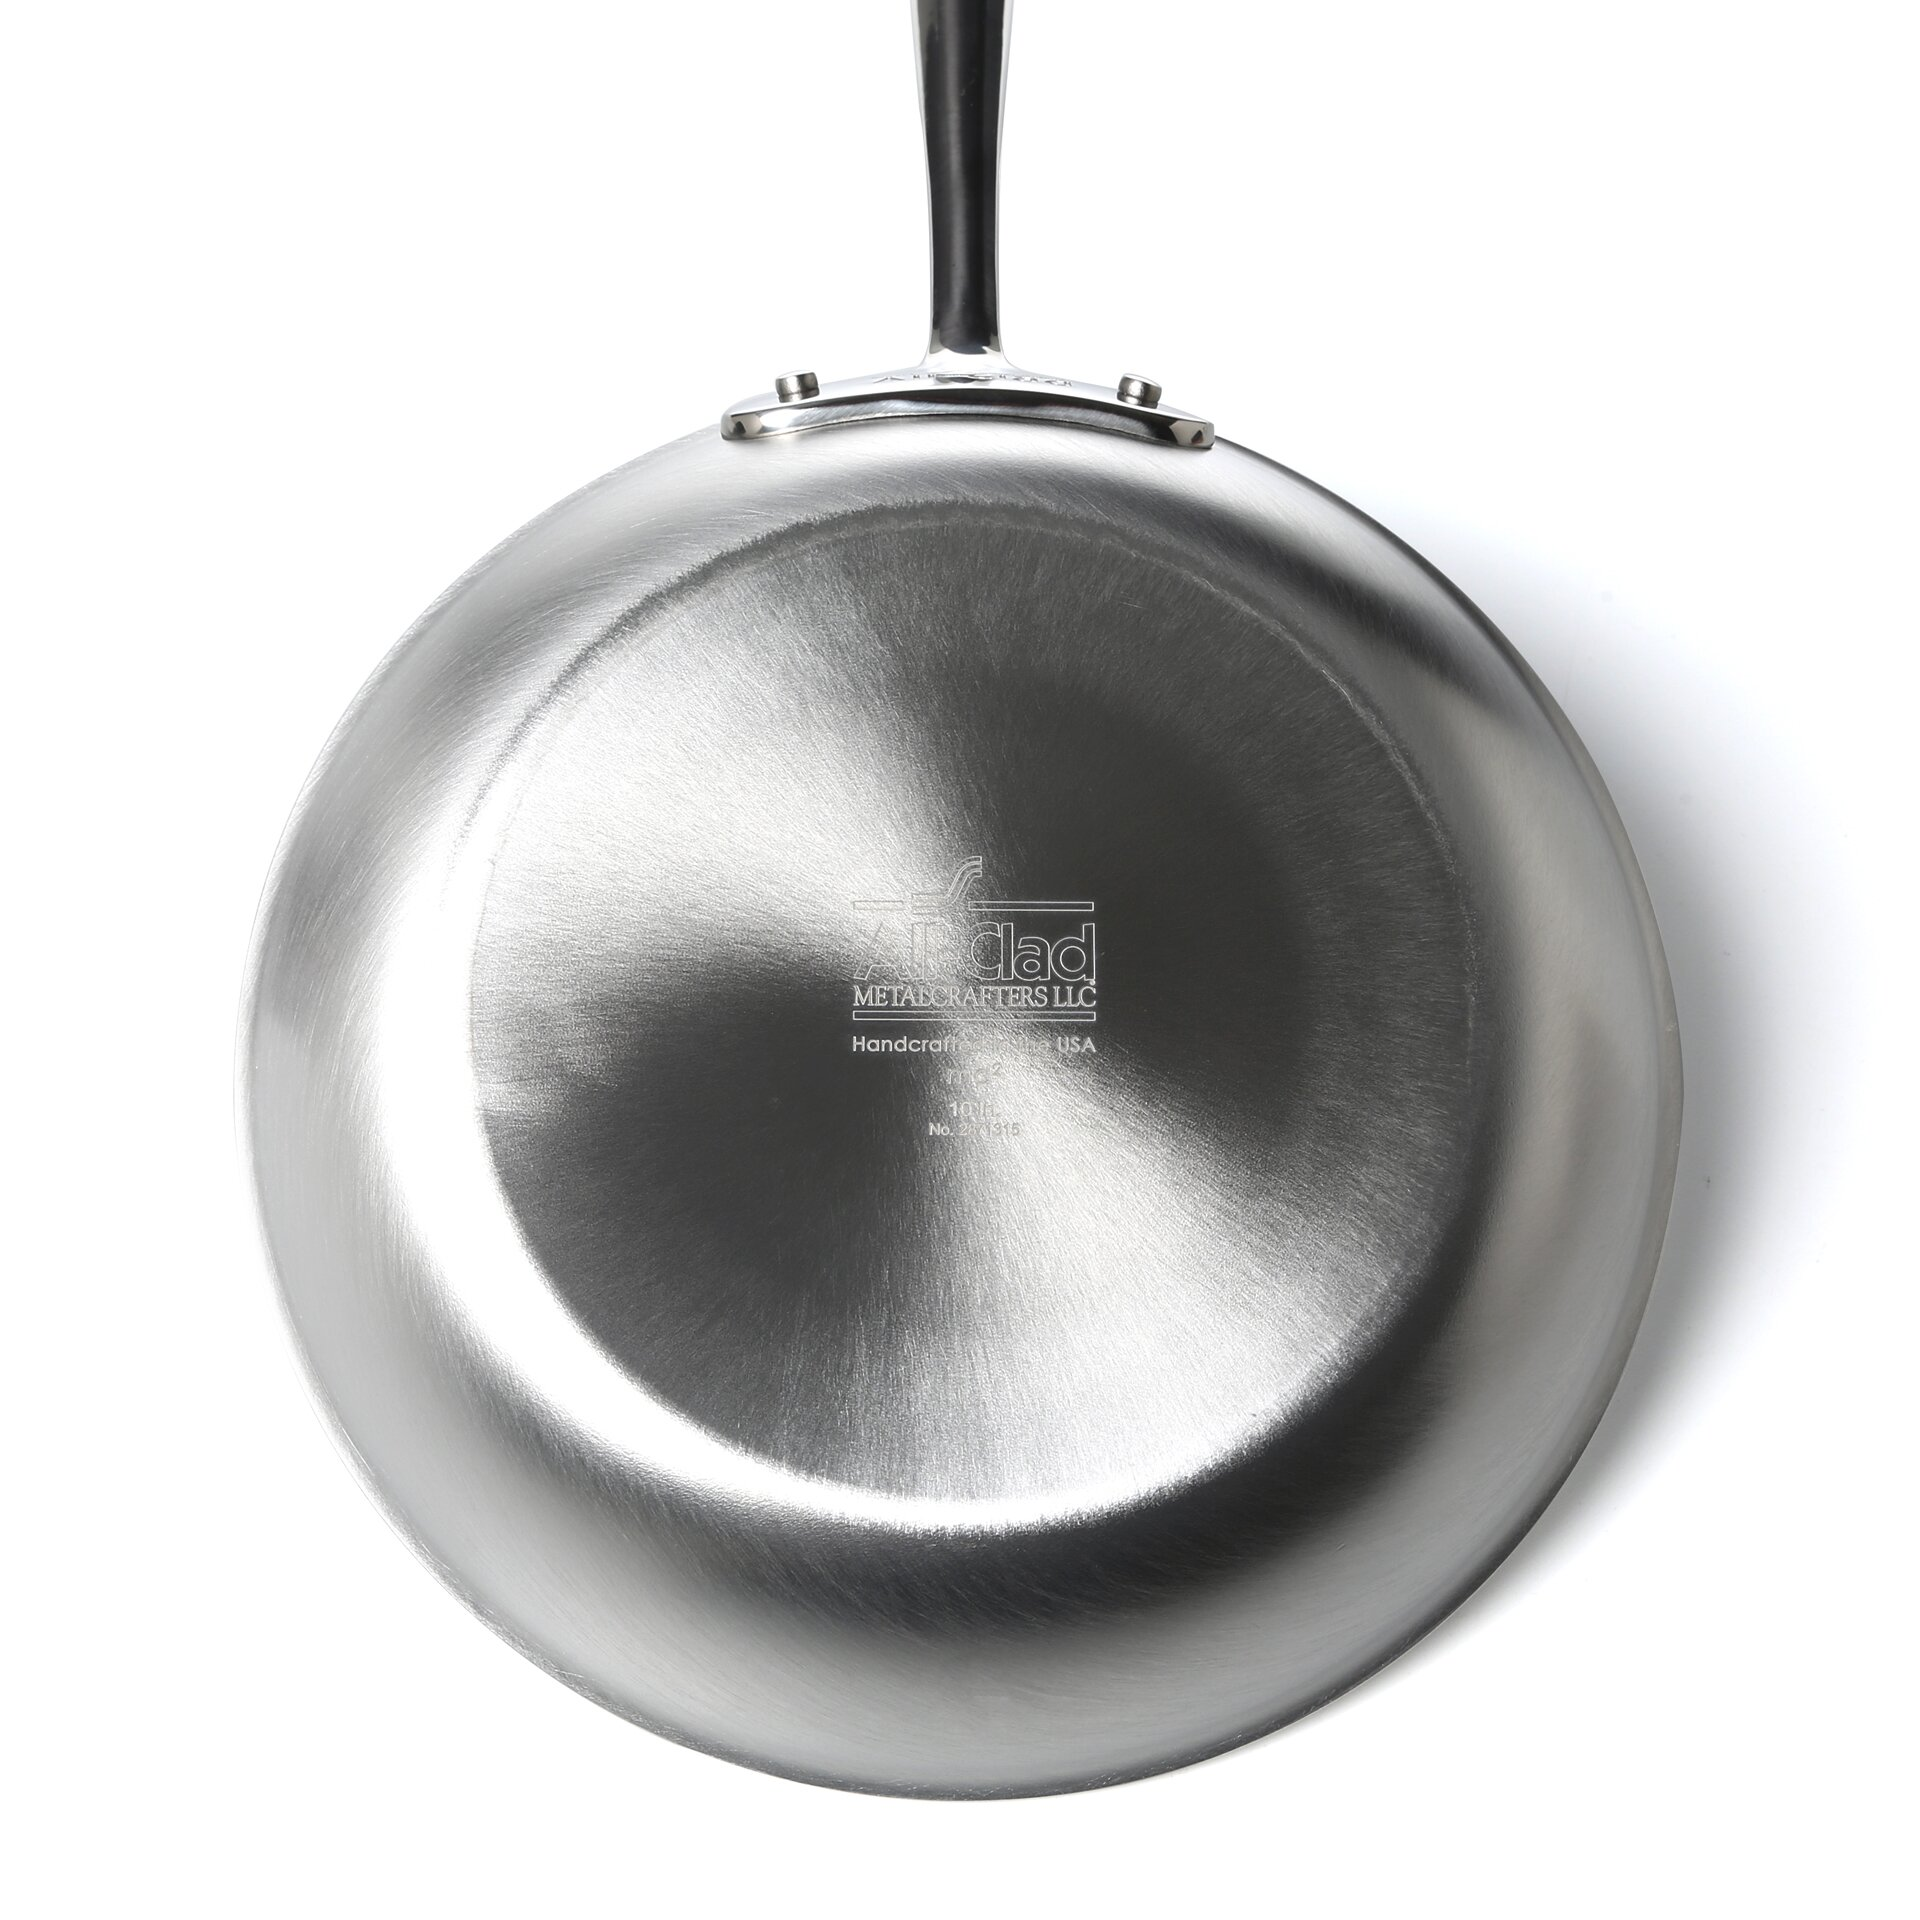 All Clad Master Chef 2 Frying Pan Amp Reviews Wayfair